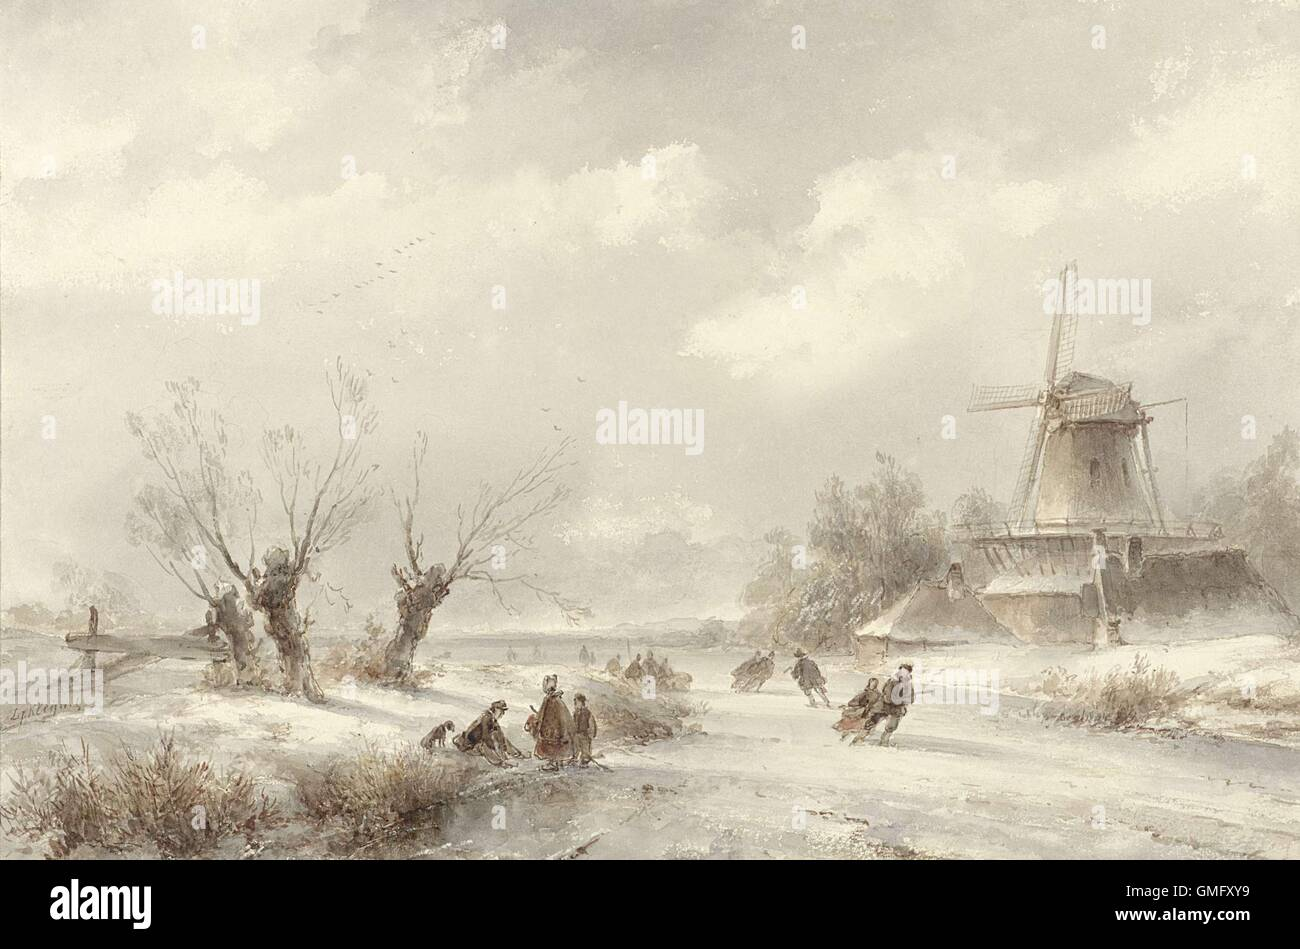 Winter Landscape with Skaters by a Windmill, by Lodewijk Johannes Kleijn, c. 1850-90. Dutch watercolor painting. - Stock Image